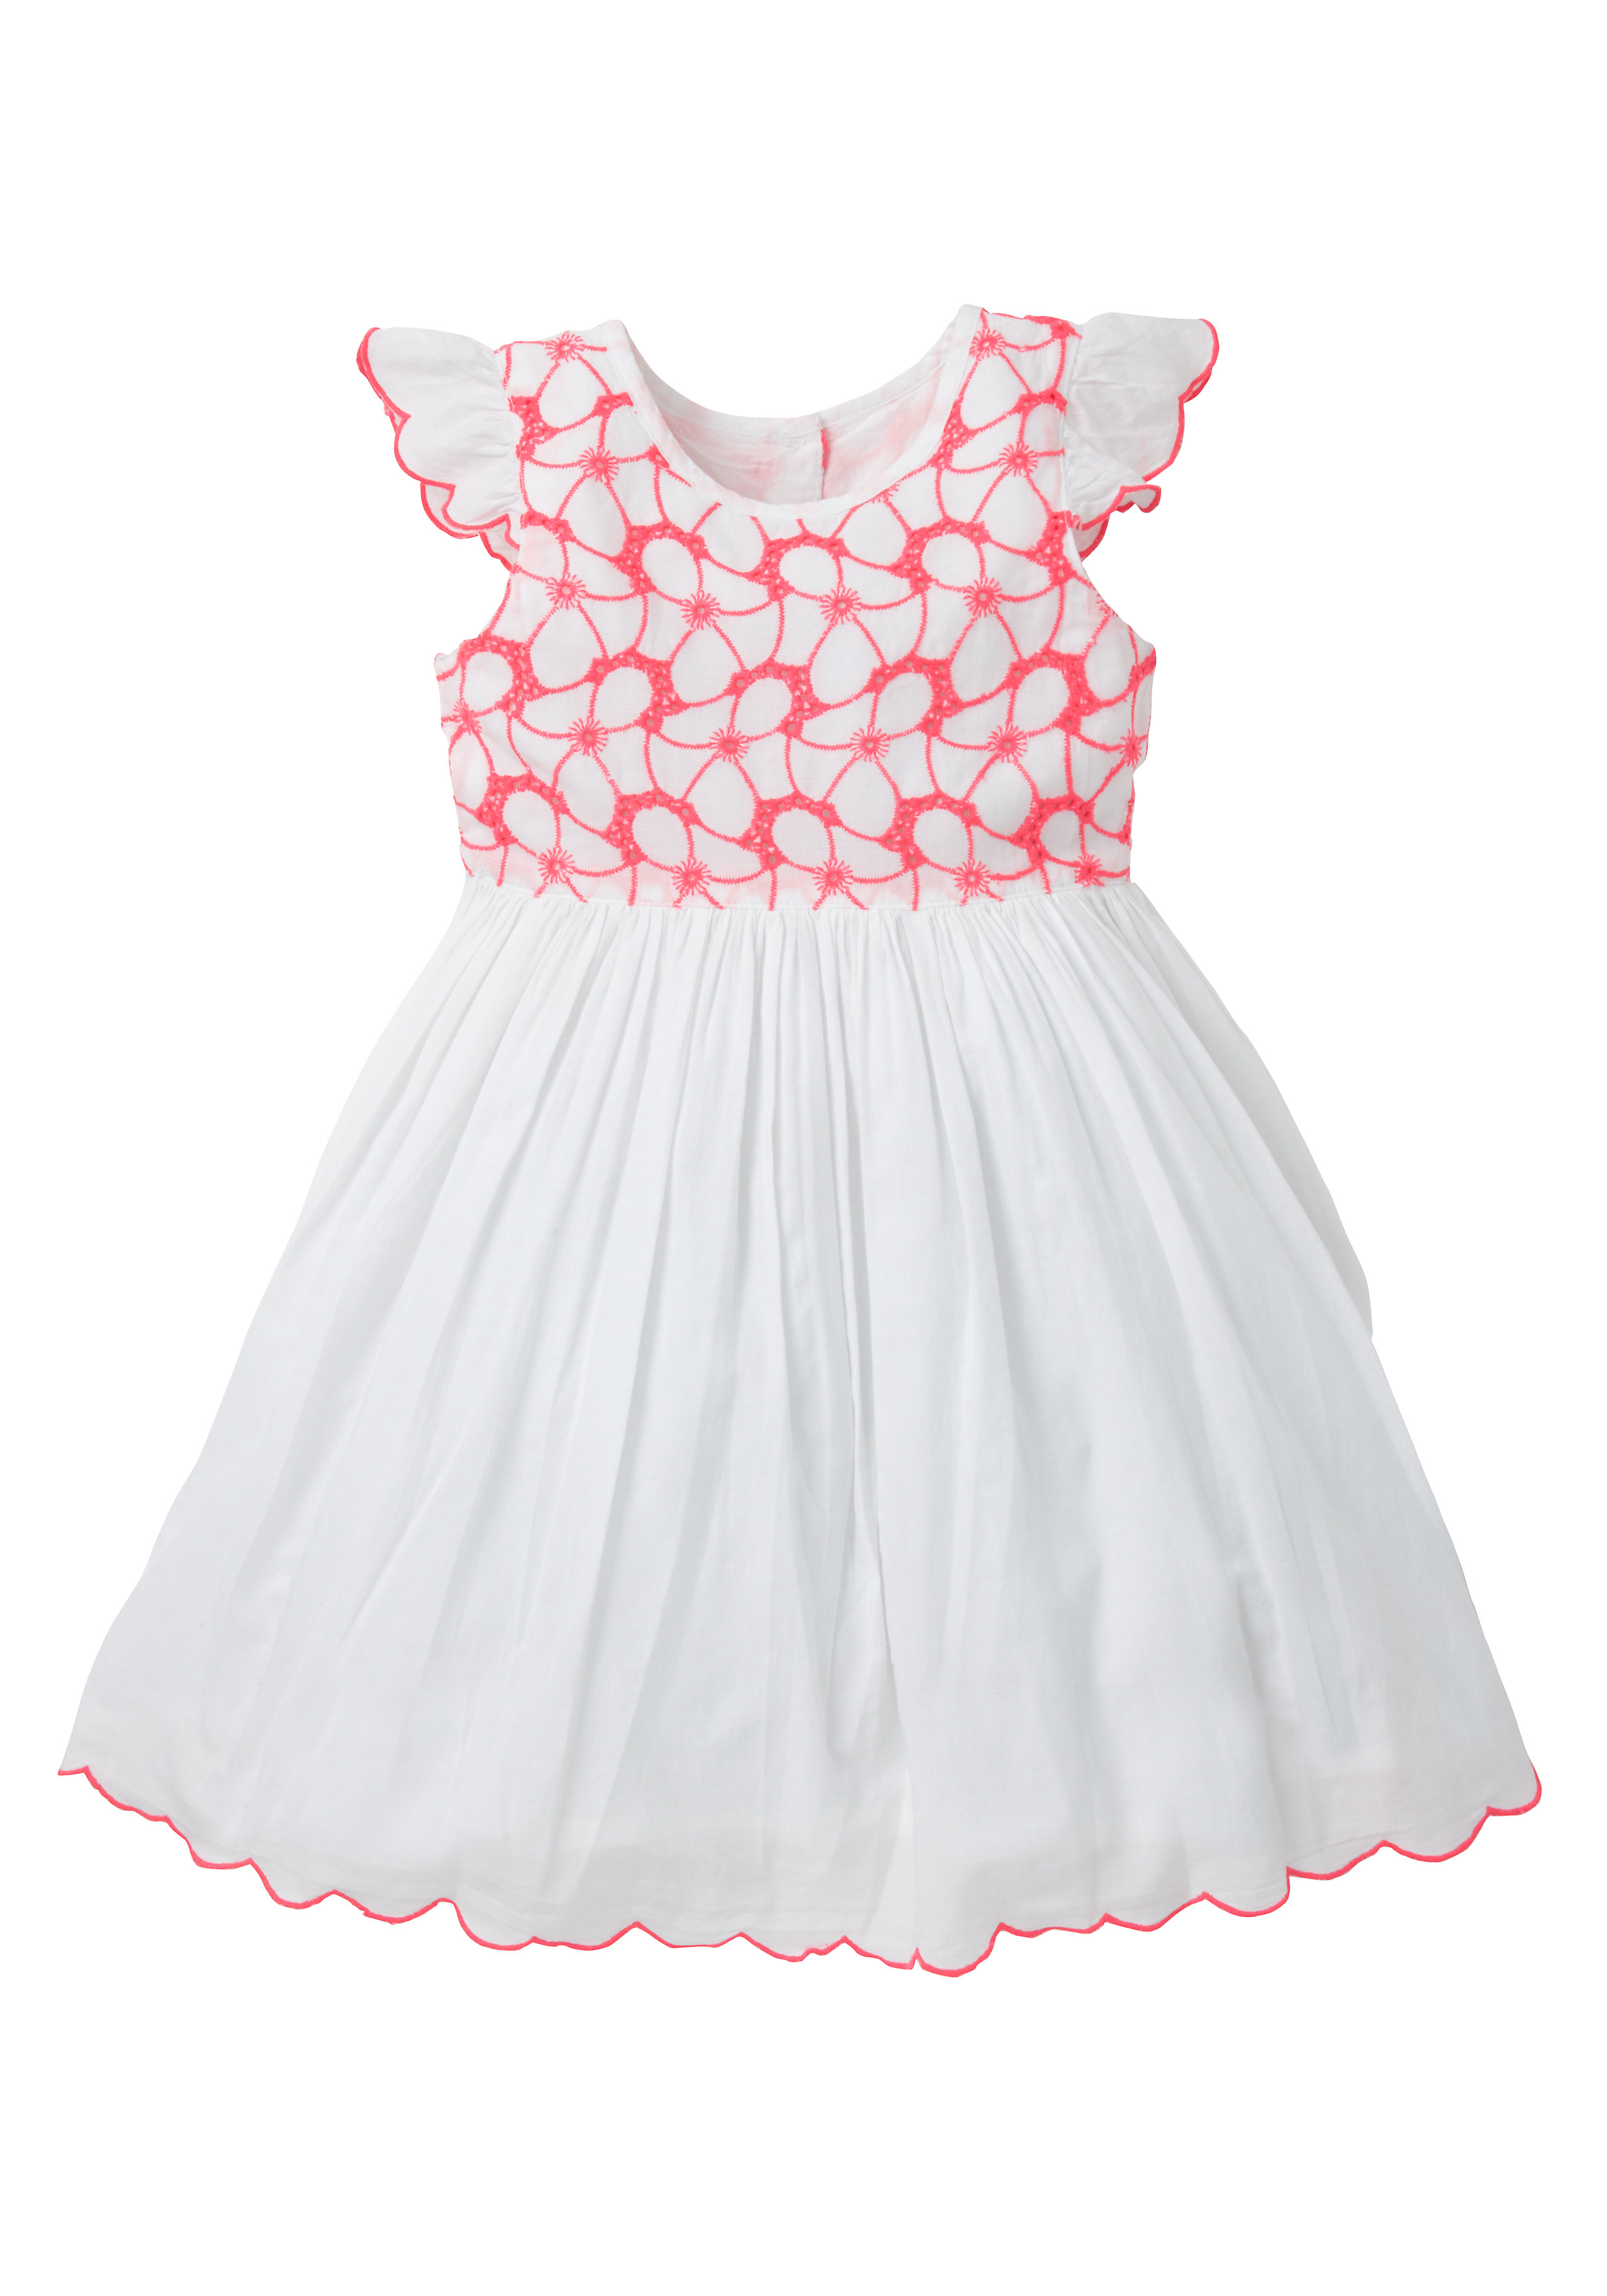 Mothercare | Girls White And Pink Embroidered Dress - White